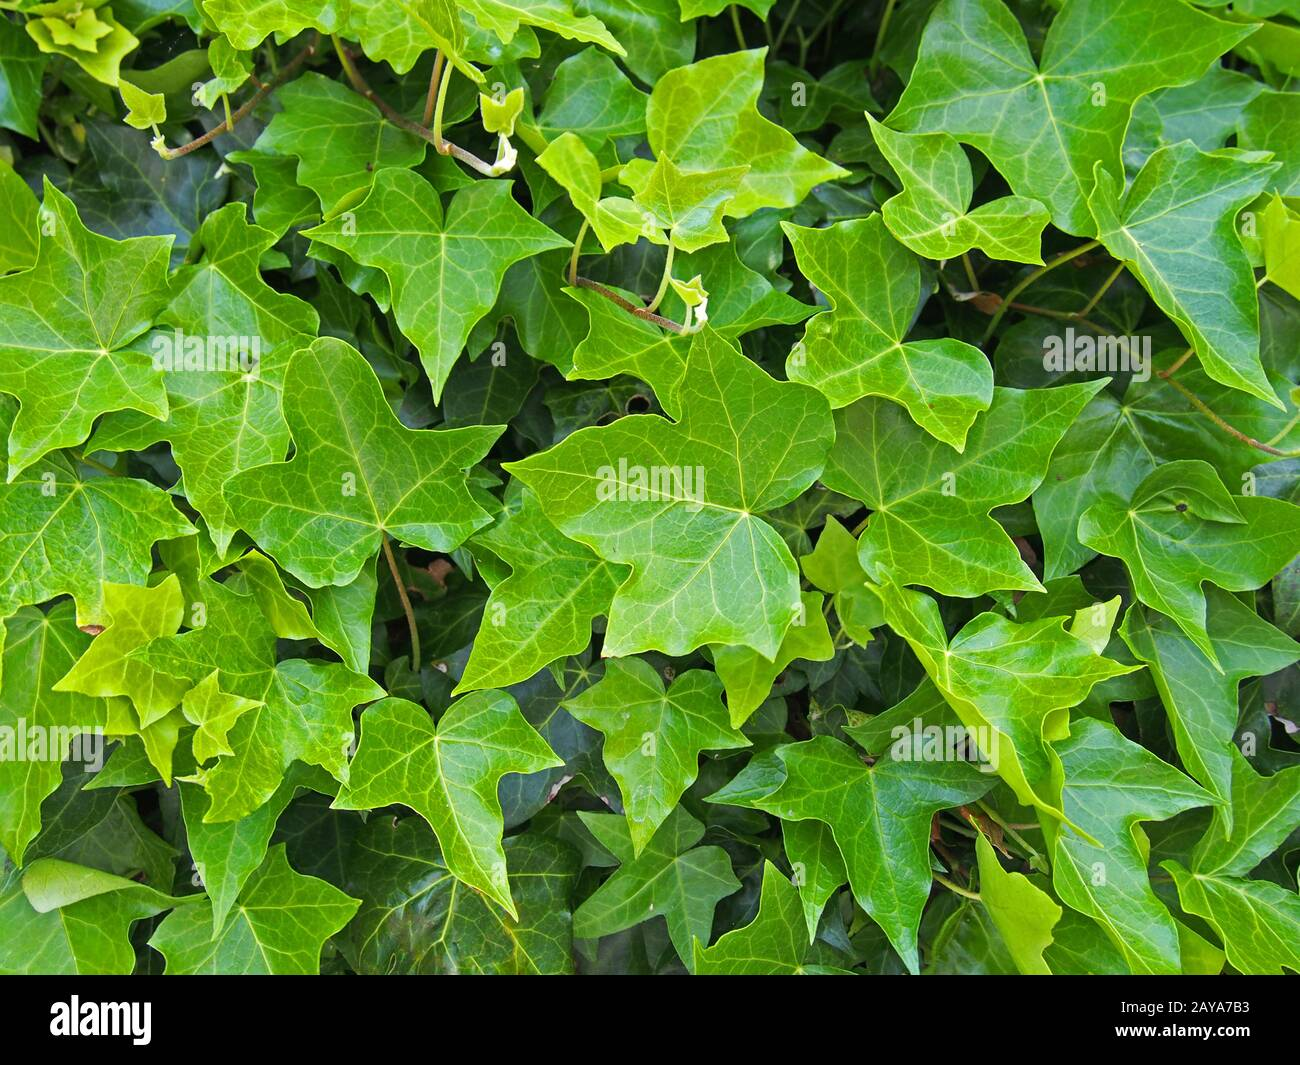 dense growth of bright green ivy in close up background image Stock Photo